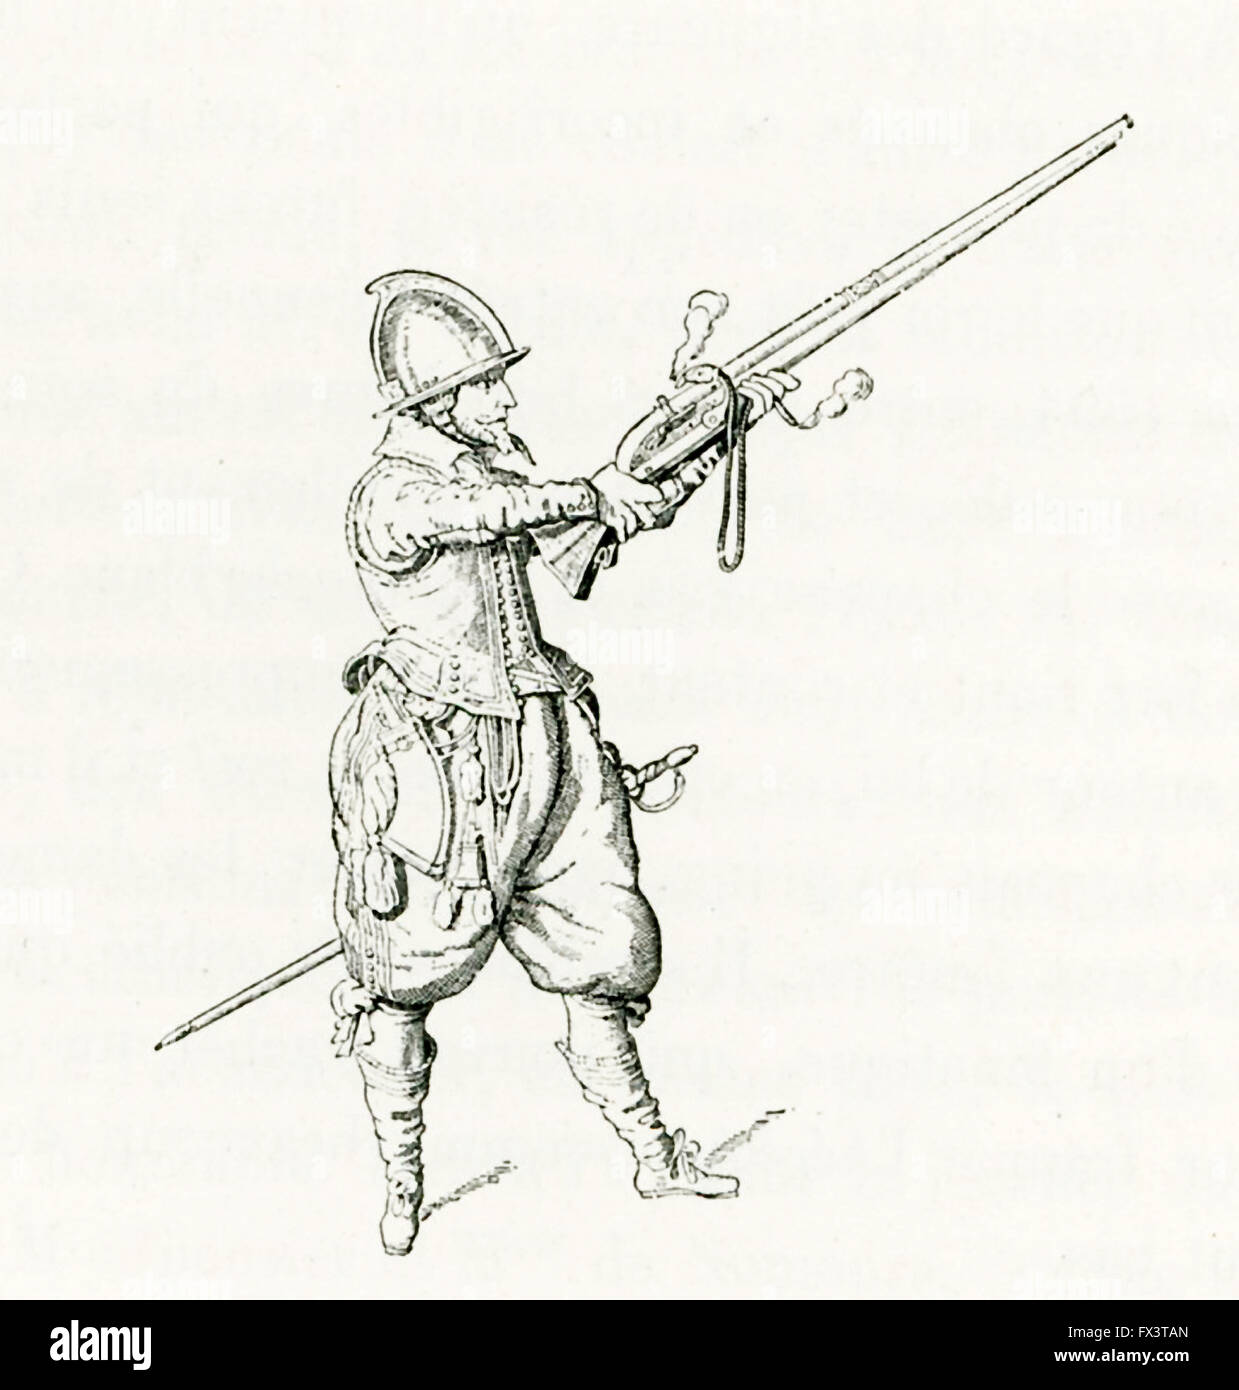 An arquebusier refers to a person who uses an arquebus, a matchlock shoulder gun. A good suit of armor would stop - Stock Image